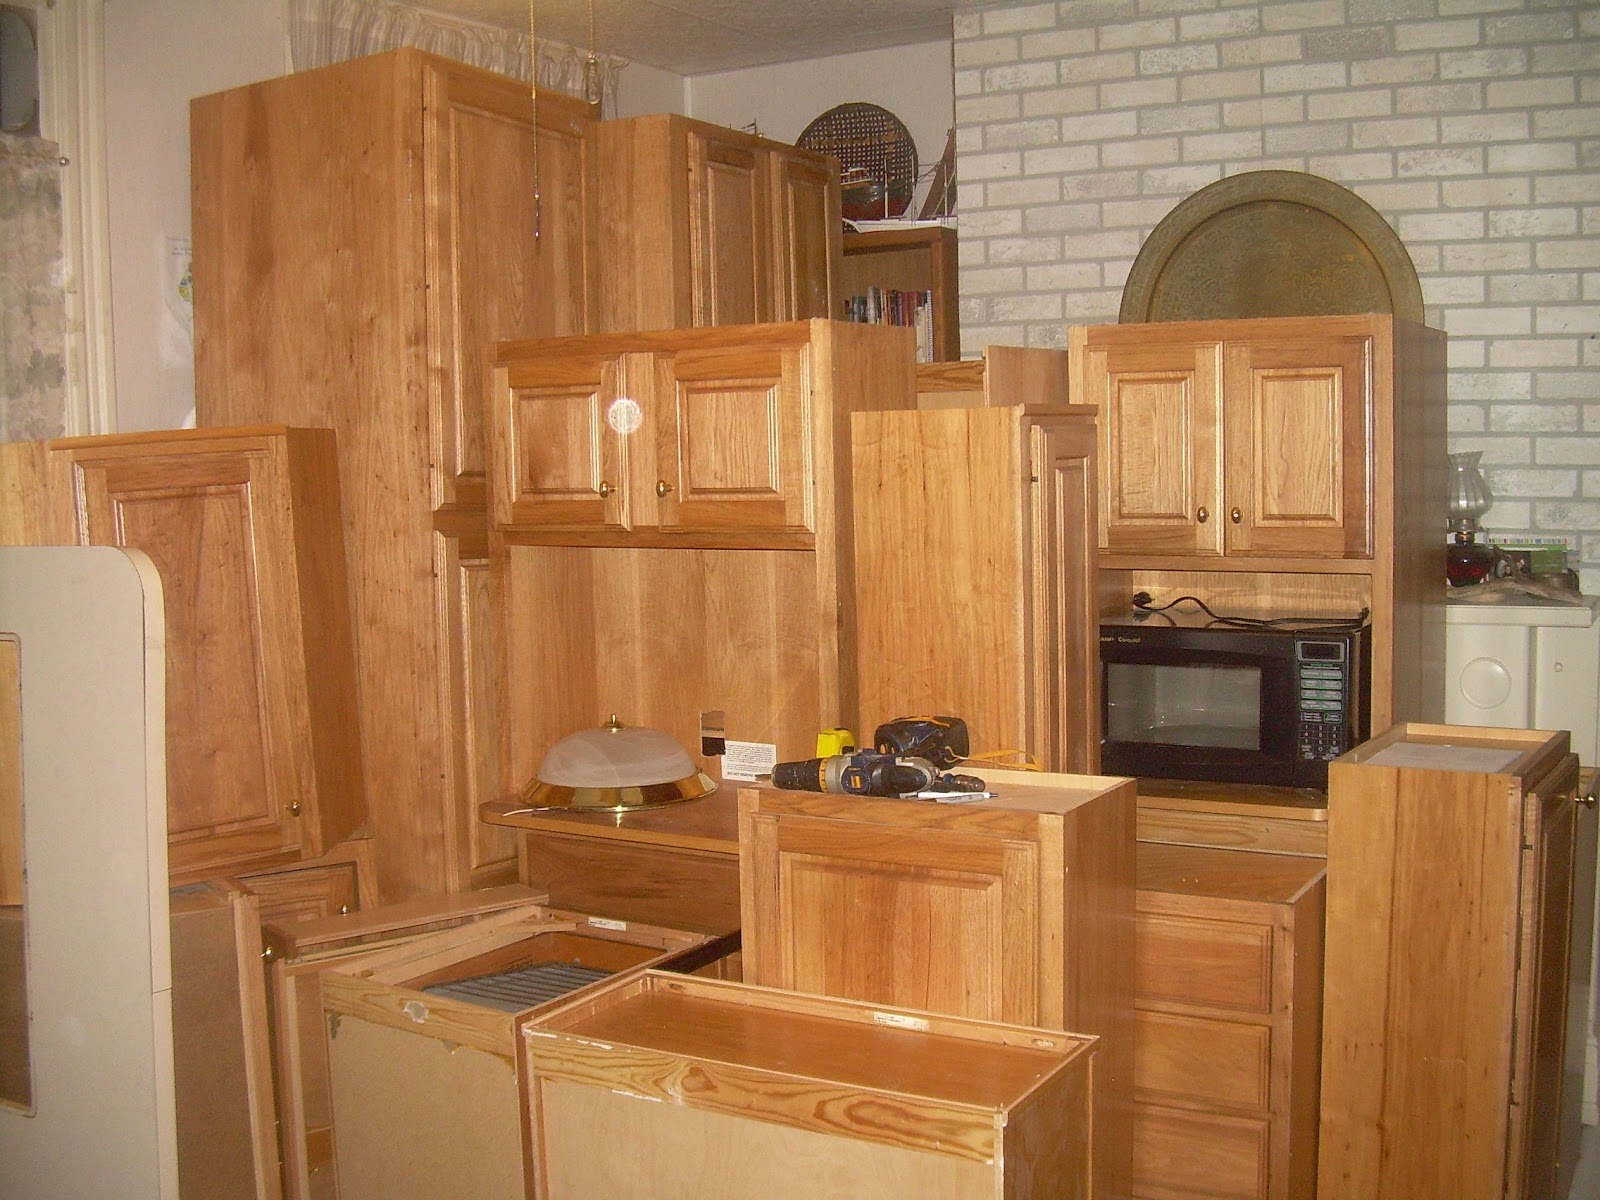 The cabinets, after transporting them from their old home in VA to